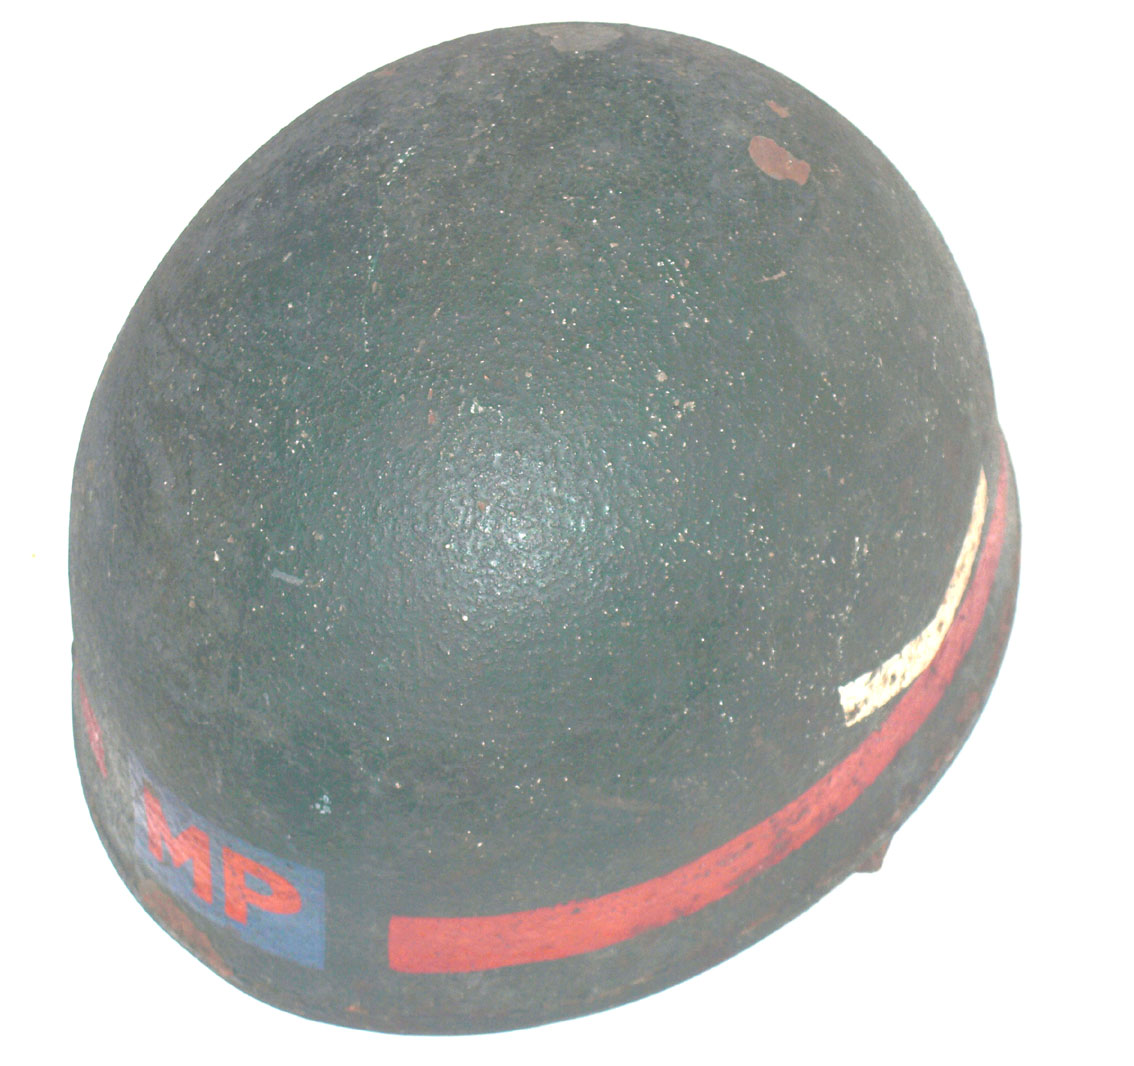 1944 Despatch Riders Helmet marked for MP L/Corporal